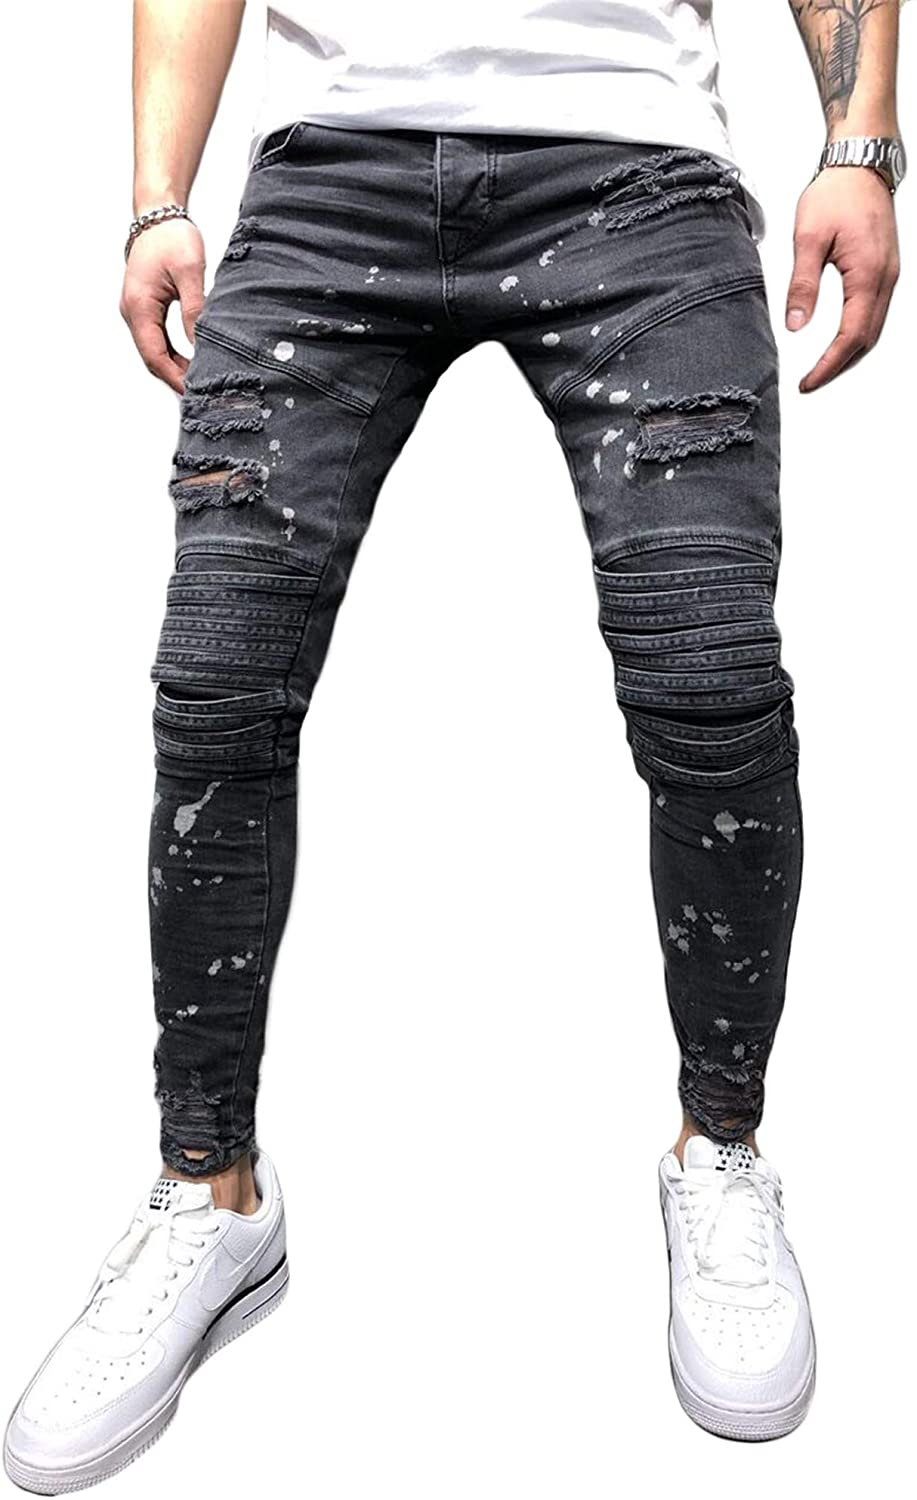 Soluo Men's Distressed Slim Fit Biker Jeans Skinny Ripped Destroyed Casual Comfy Pants Hip Hop Stretchy Trousers